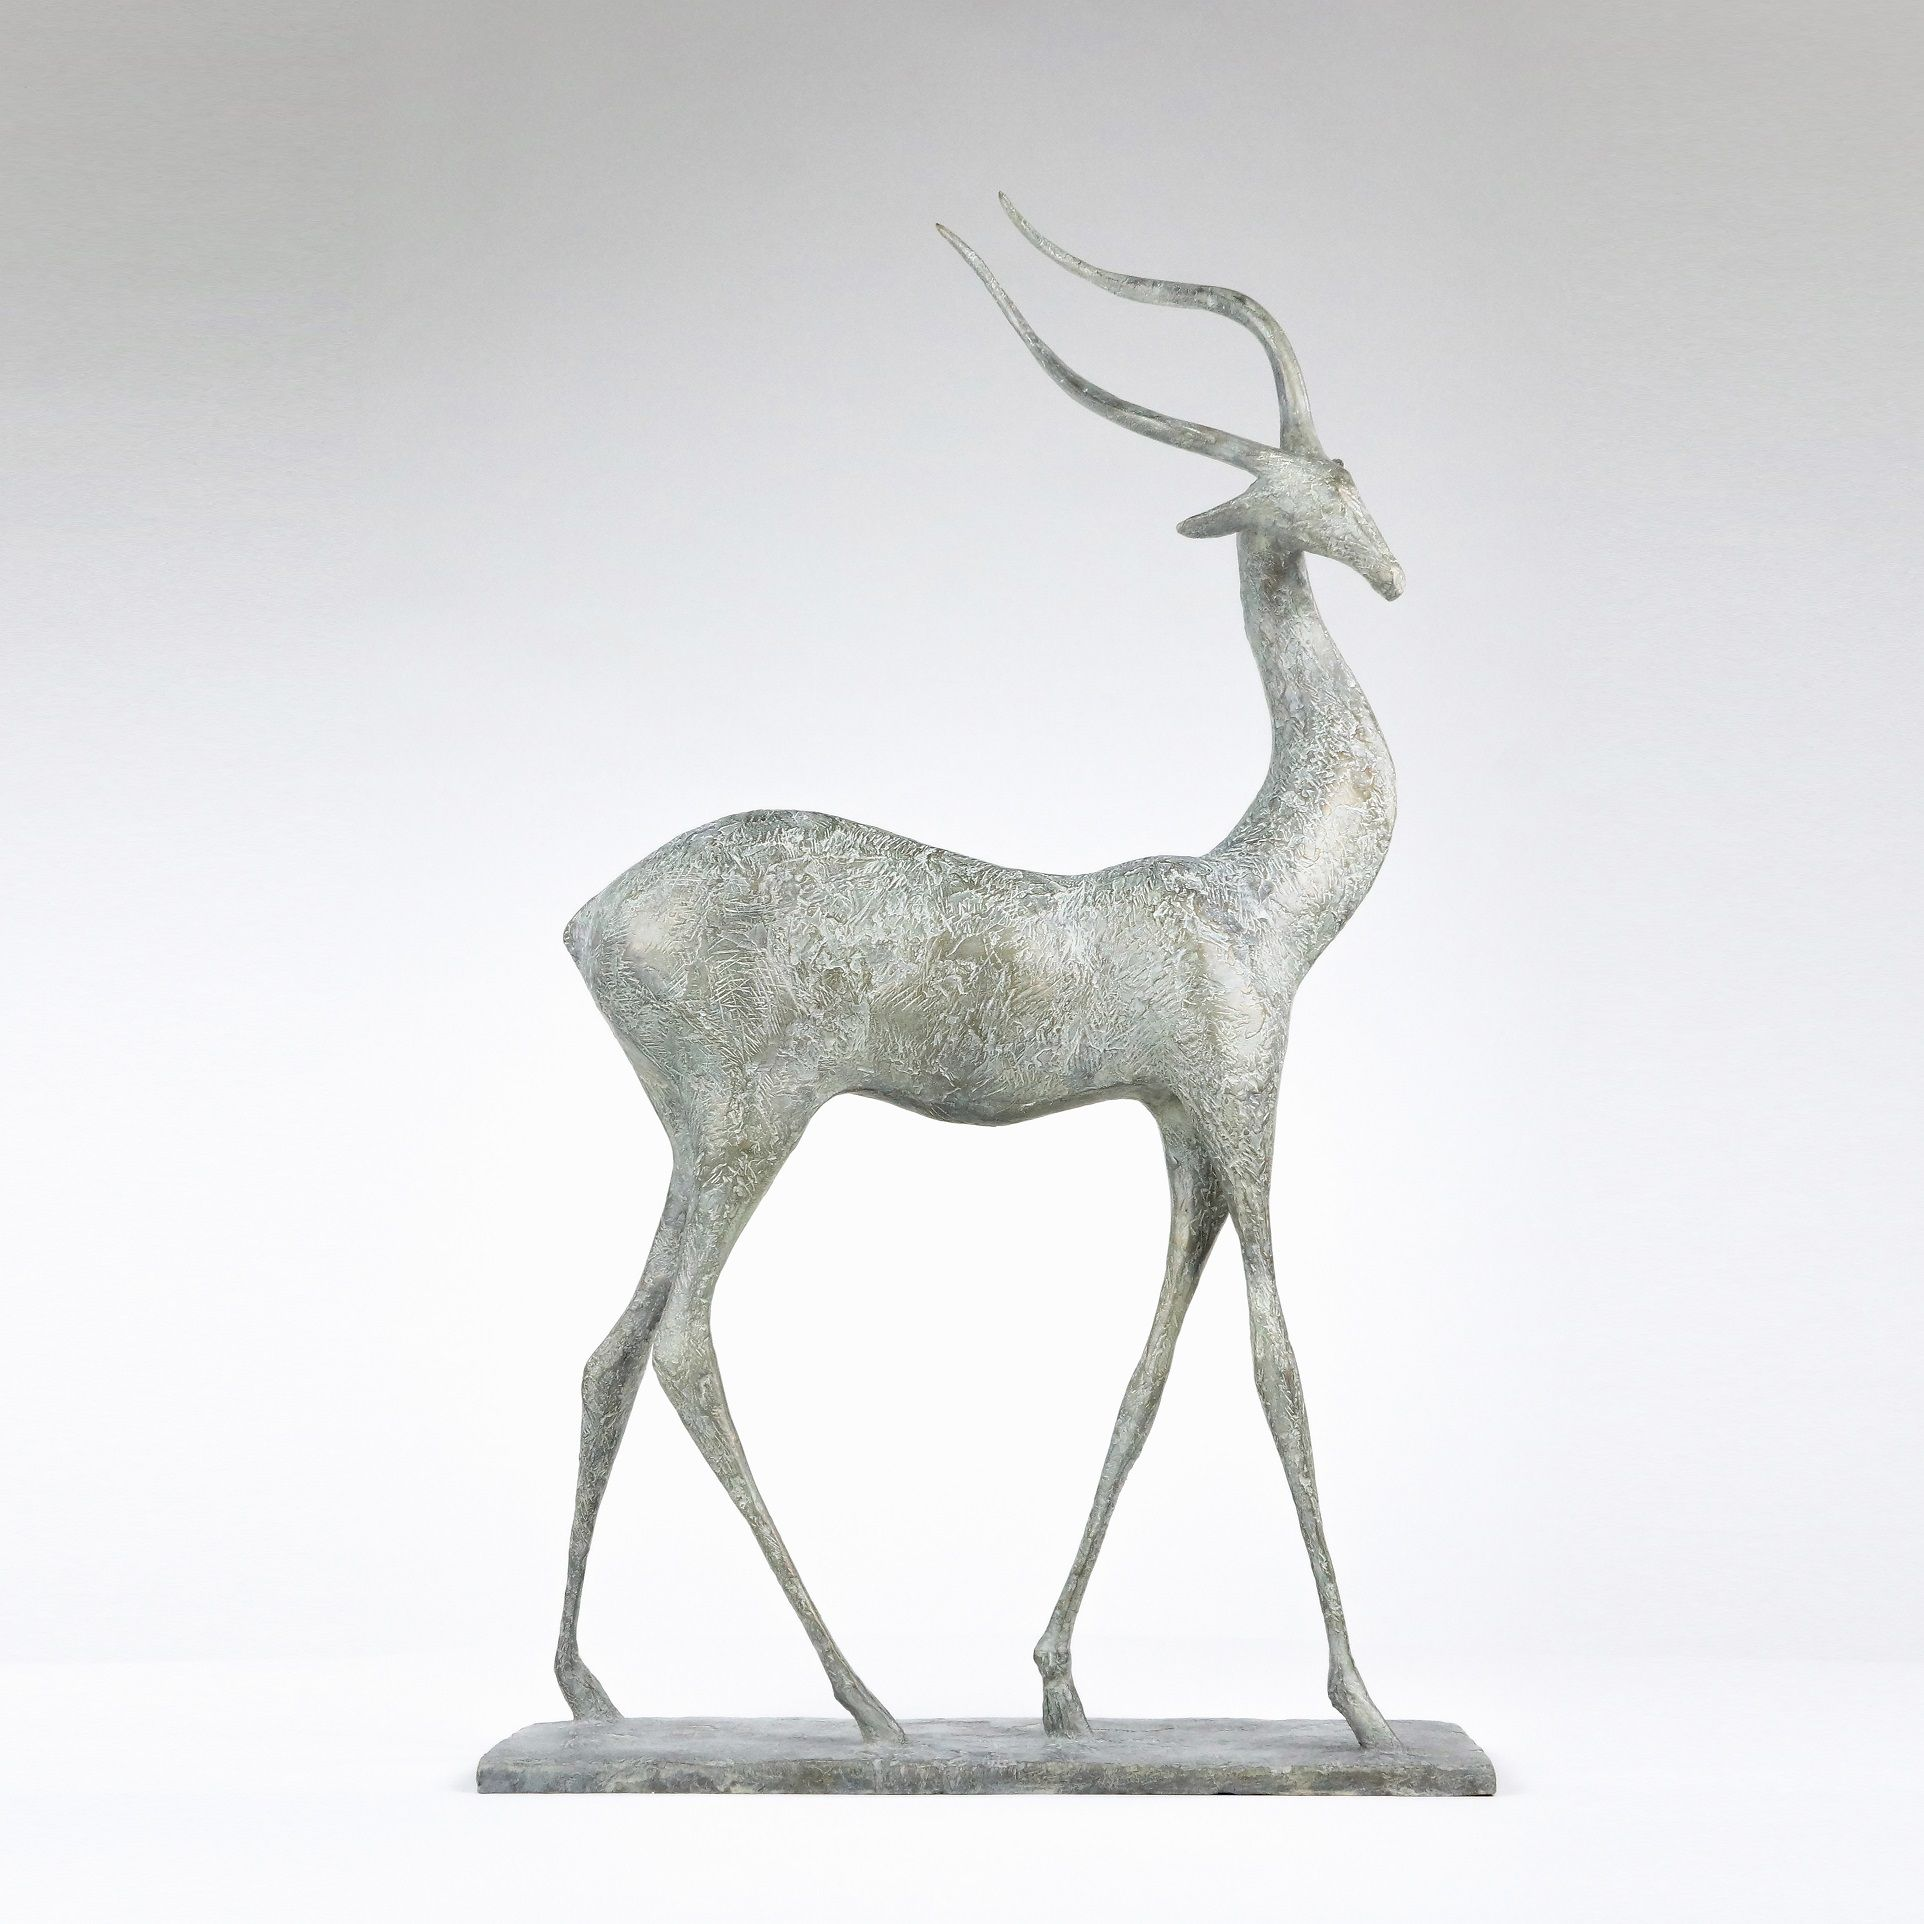 Gazelle II,Pierre Yermia,Sculpture